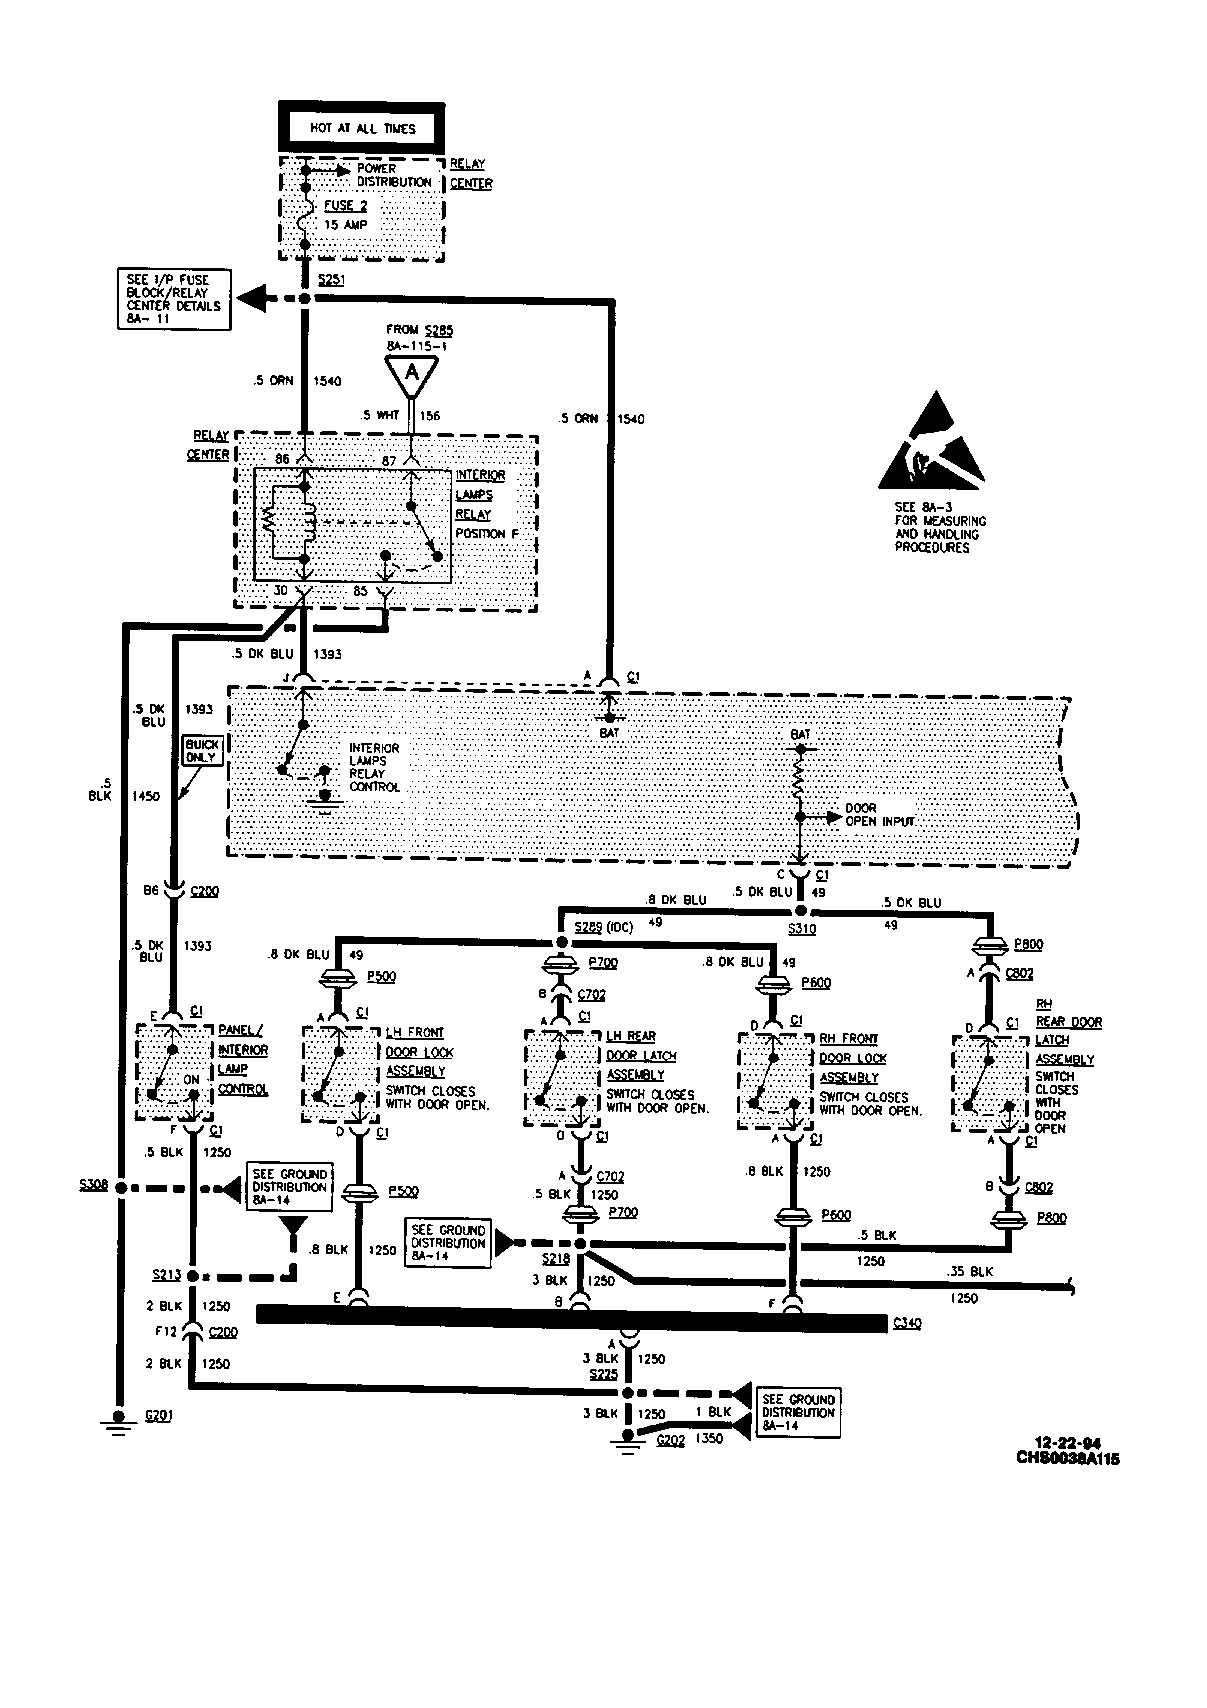 2011-06-16_234930_95_lesabre_lamp_diagram2  Buick Century Wiring Diagram on 95 buick century keyless entry, 1998 buick century engine diagram, 1995 buick lesabre parts diagram, 95 buick century manual, buick century pcm diagram, 1993 buick century radiator diagram, 1997 buick lesabre parts diagram, 1988 firebird wiring diagram, buick transmission solenoid diagram, 95 buick lesabre fuse diagram, 2003 buick century engine diagram, 95 buick century transmission, 99 buick century engine diagram,